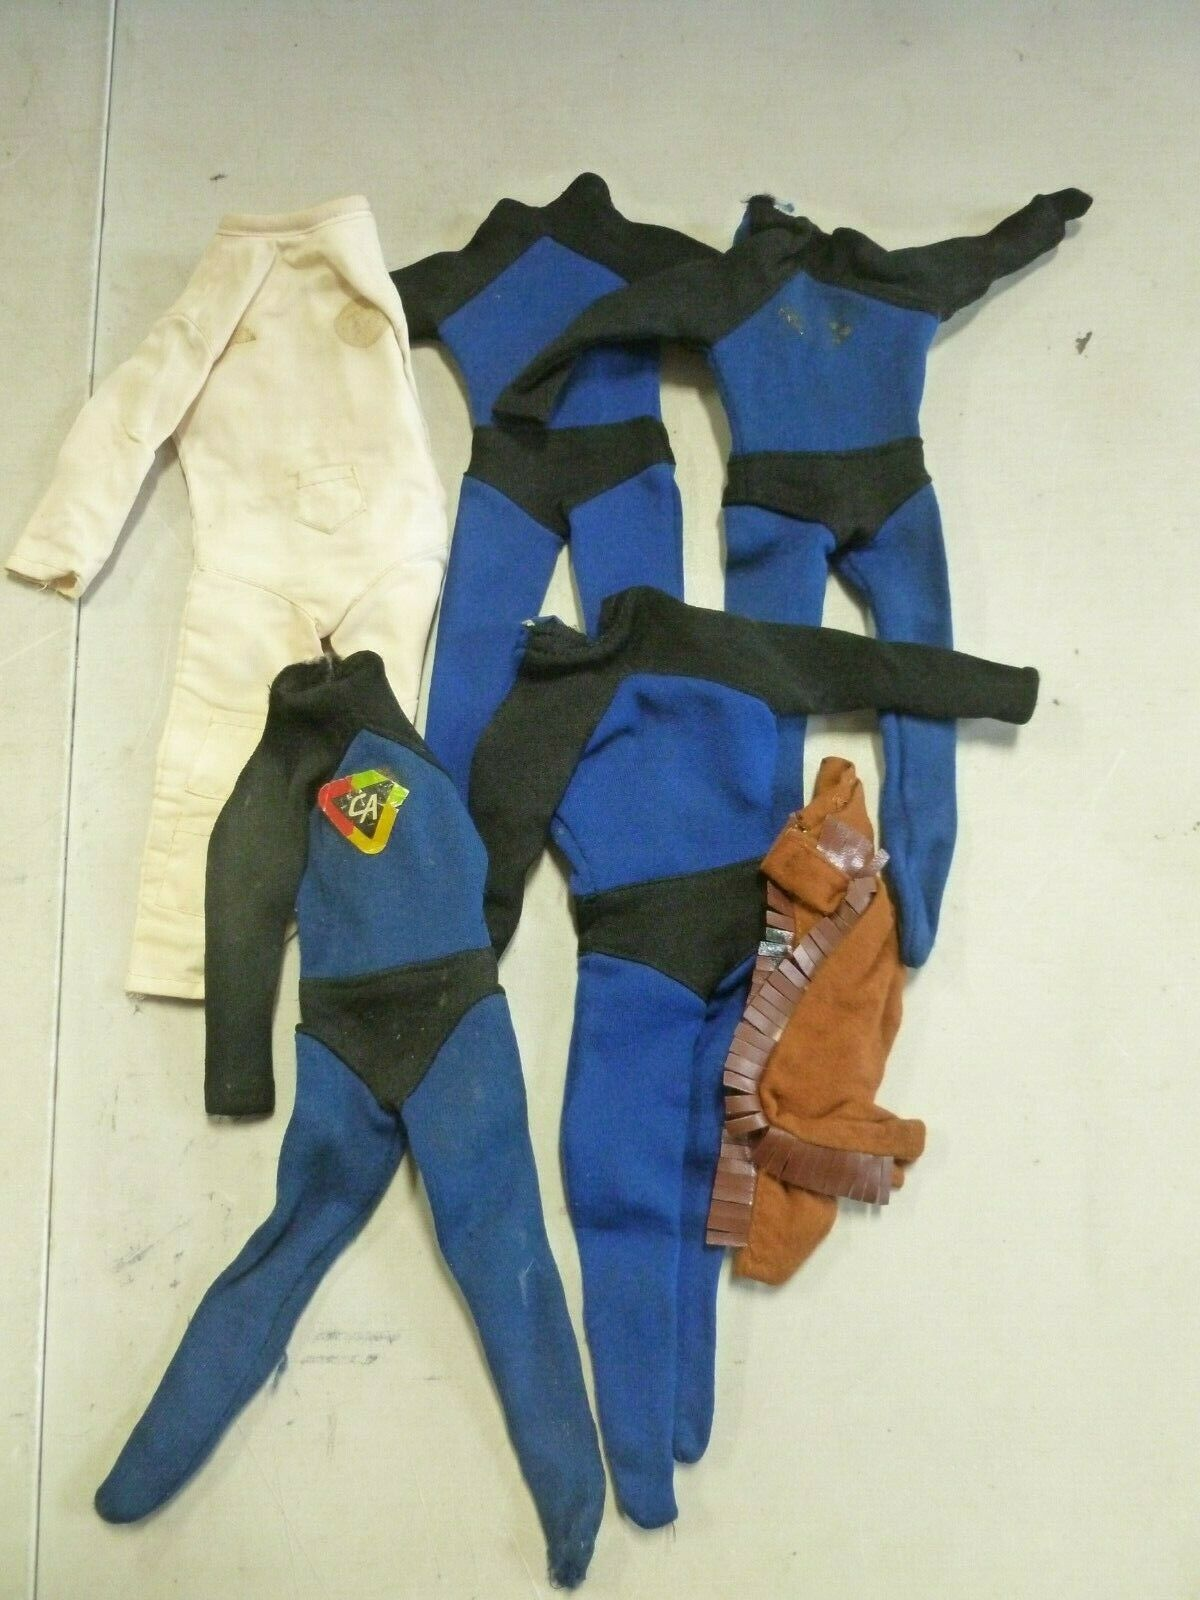 Lot  of 5 Captain Action Outfits (1)  économiser jusqu'à 70% de réduction